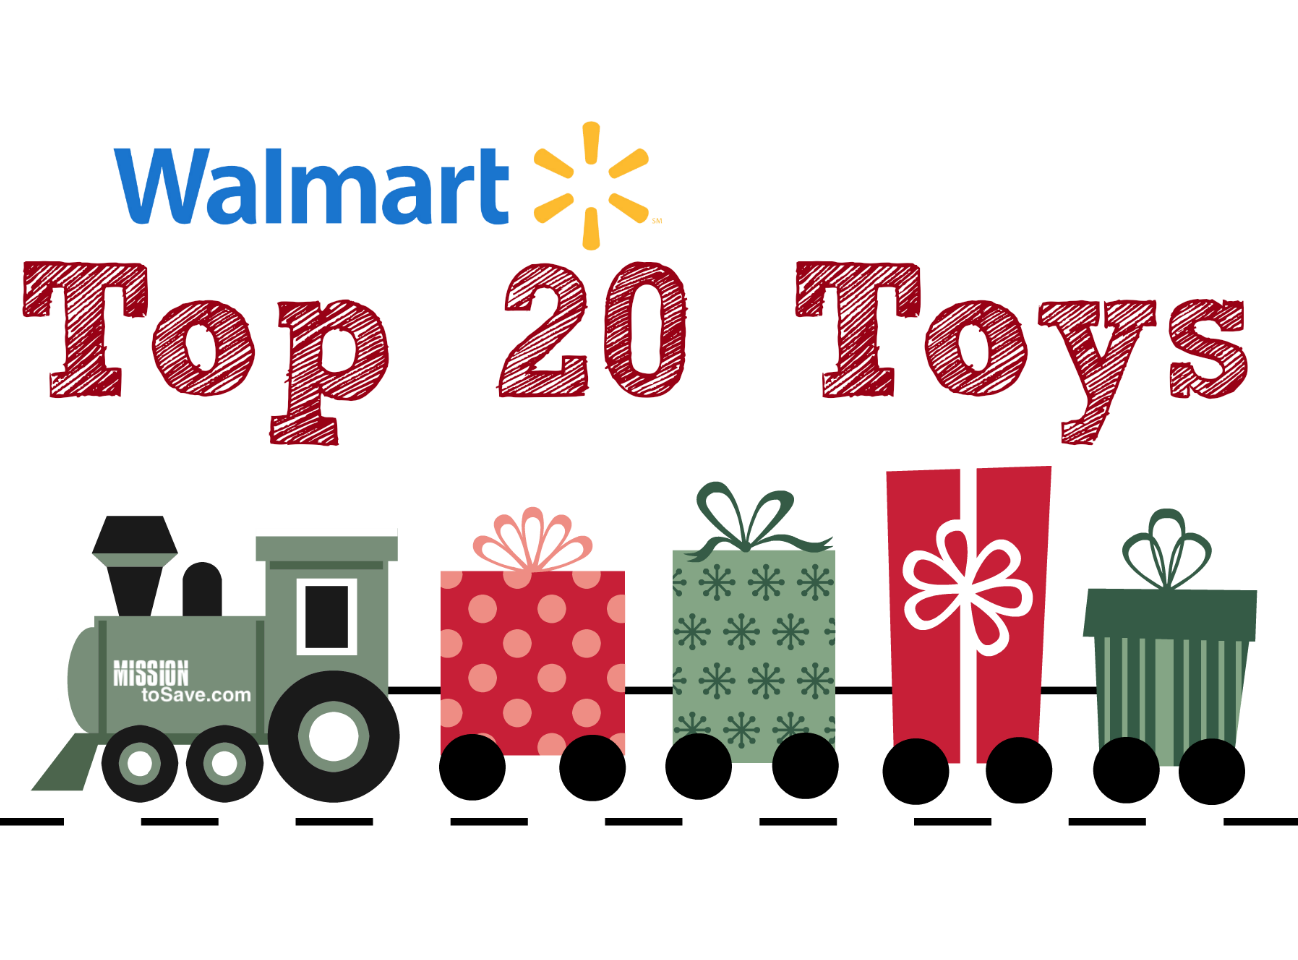 Walmart Toys For Christmas : Walmart top toys for holiday season mission to save